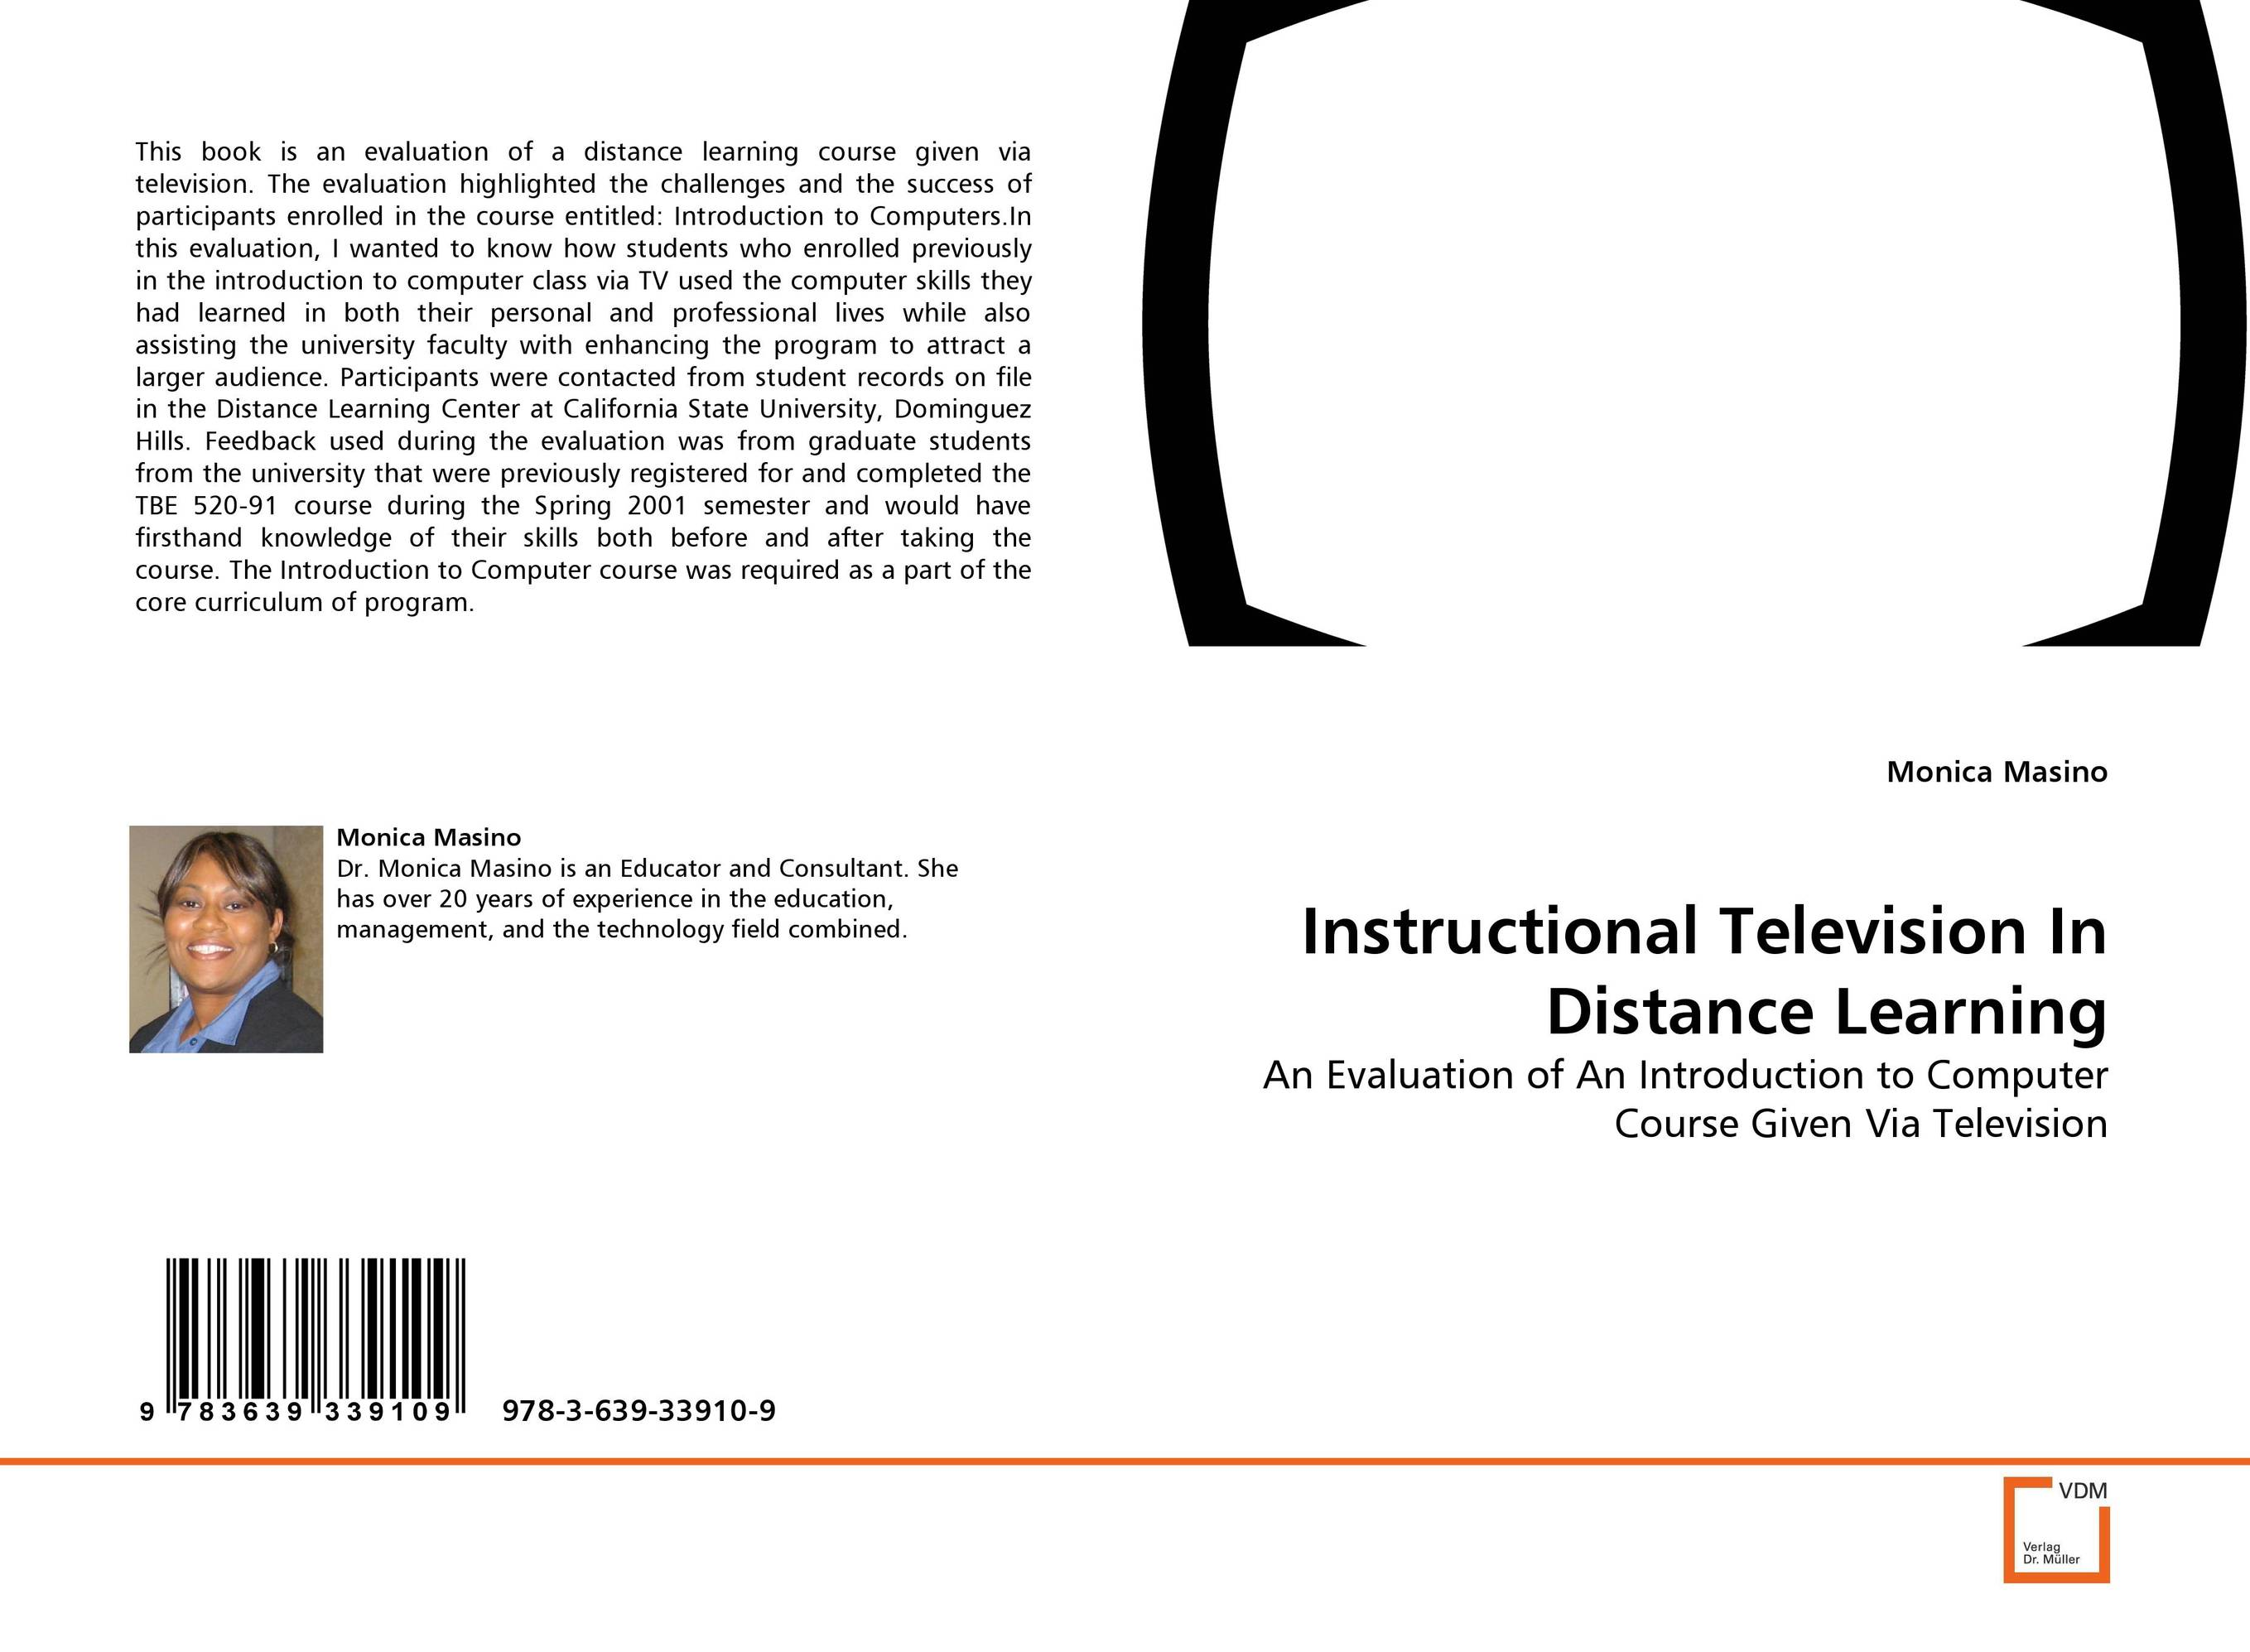 an introduction to the use of distance learning These distance education sections of psyc 101 use the content-rich edx (see edxorg) platform the course uses an open-source text that is supplemented by many video-based lectures and online resources in addition, the course contains interviews with some leading research psychologists and some demonstrations of psychological.